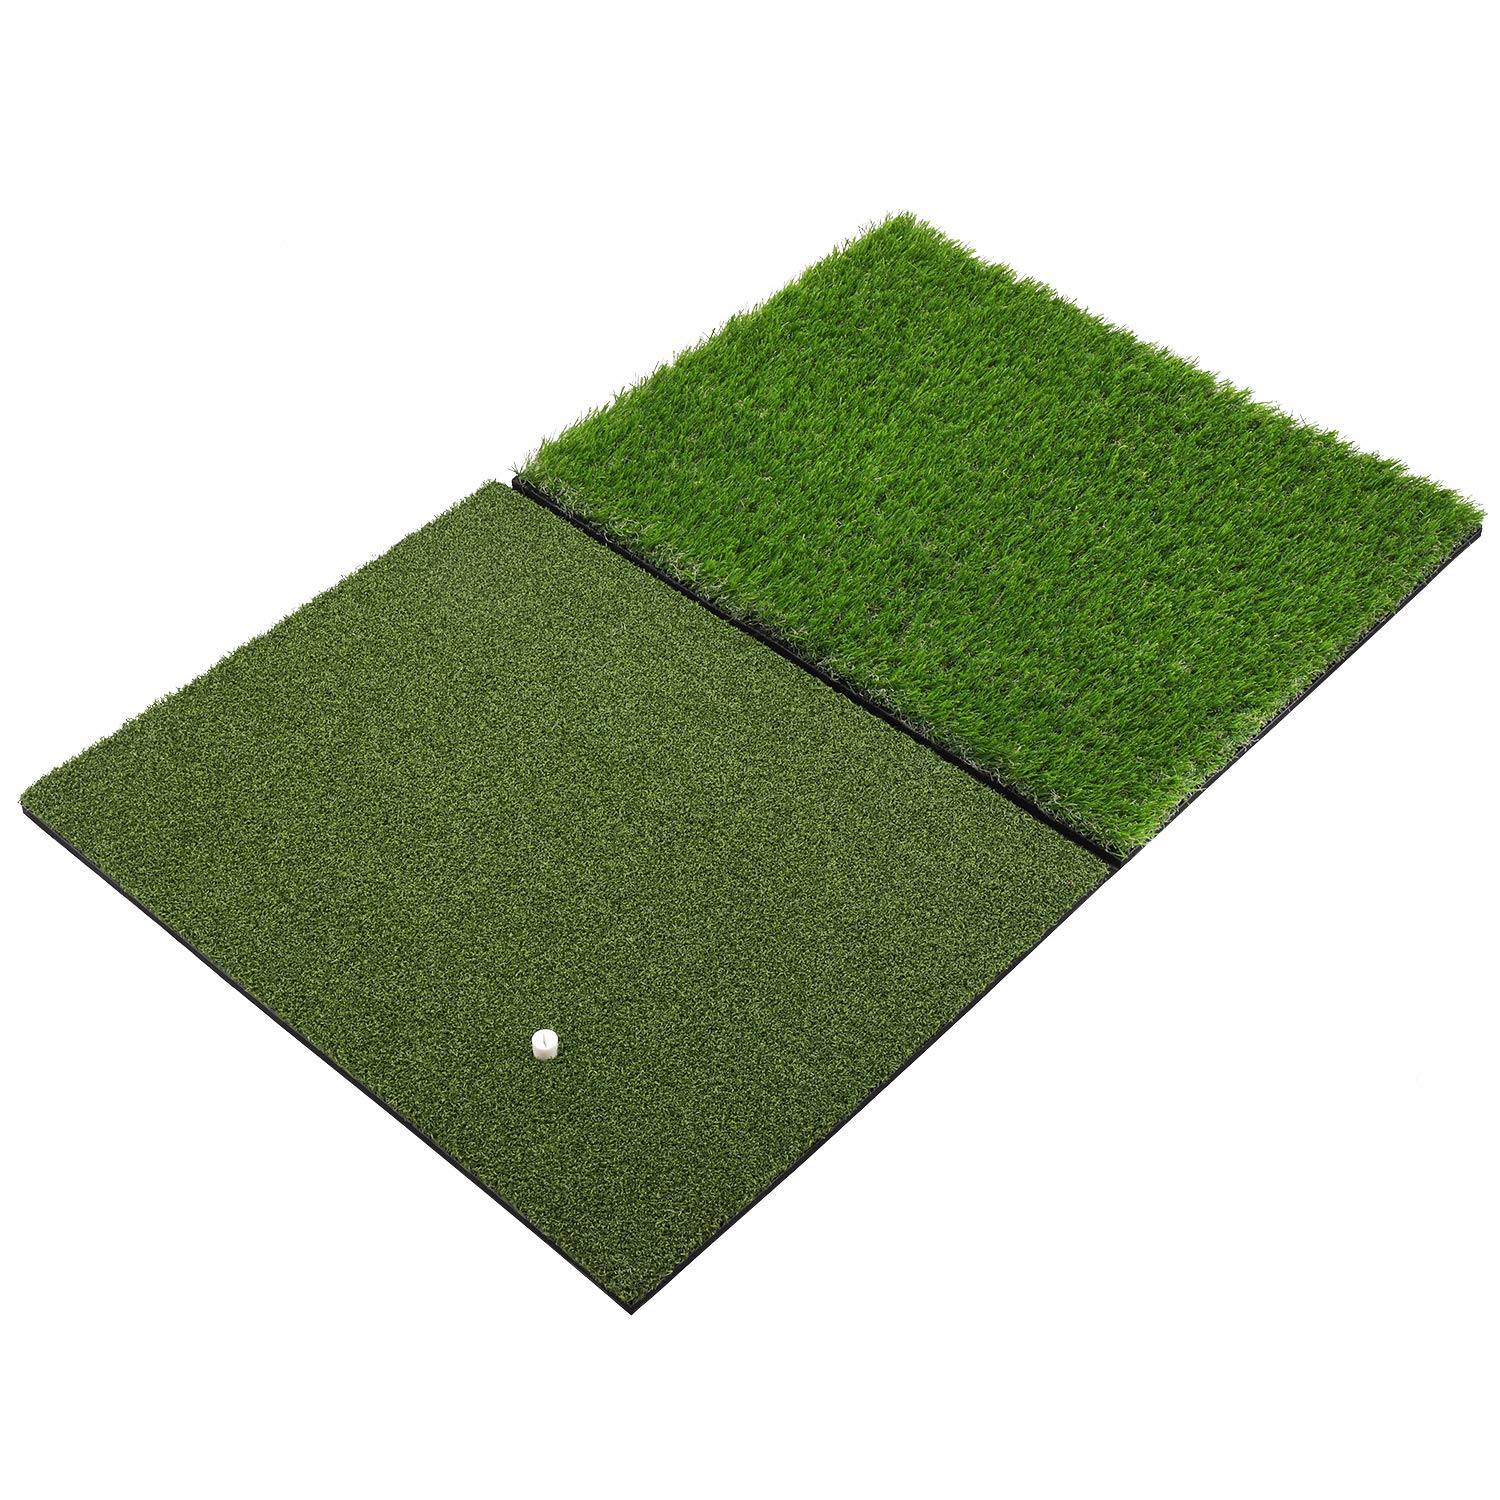 SkyLife Dual-Turf Golf Hitting Grass Mat XL 24''x37'', Portable Training Fairway Rough Turf, Driving Chipping Golf Equipment, Home Backyard Garage Outdoor Practice (XL 24''x37'') by SkyLife